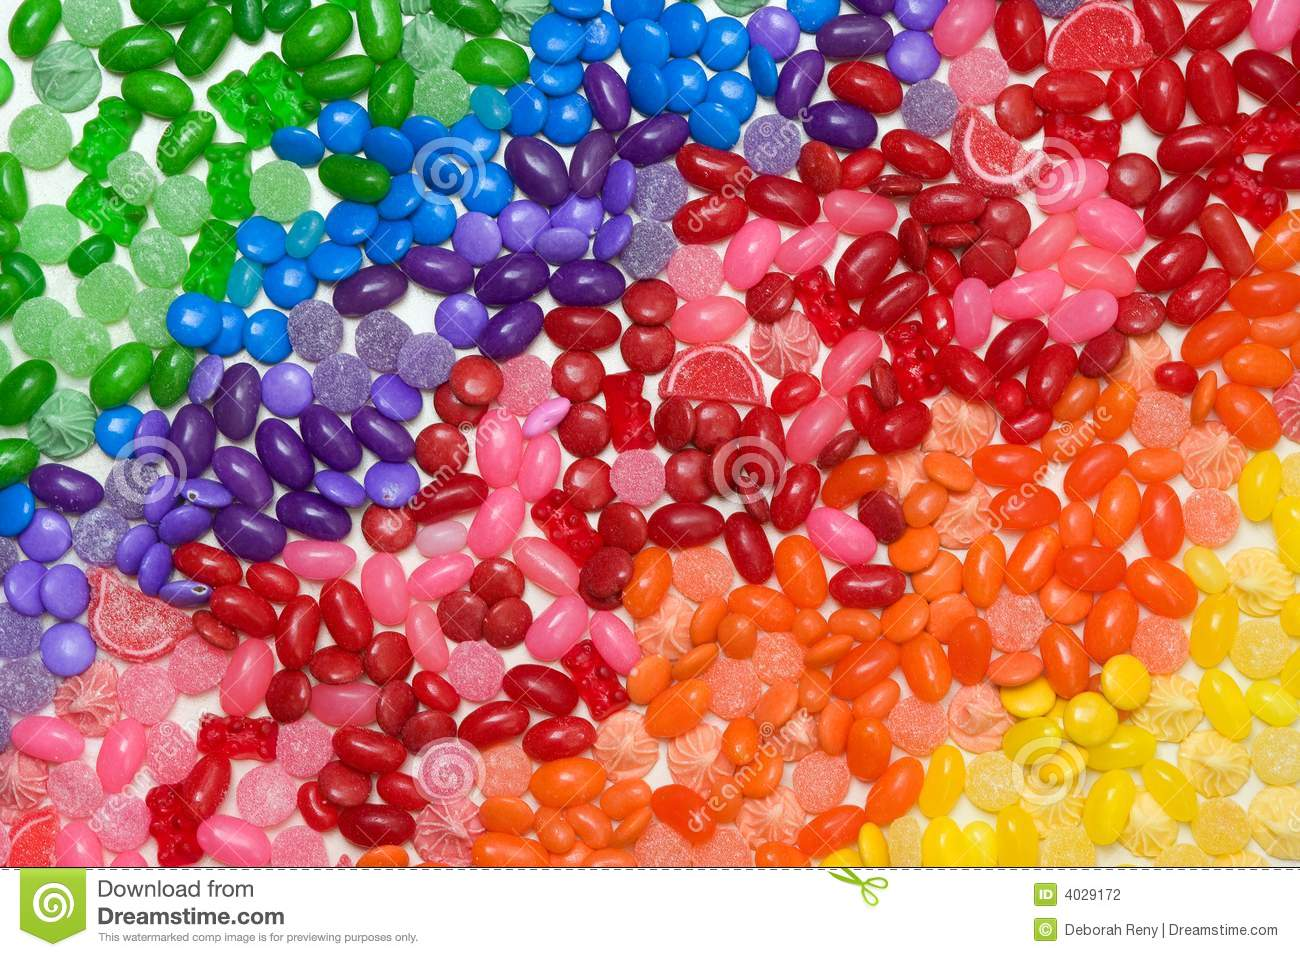 Rainbow Candy Wallpaper